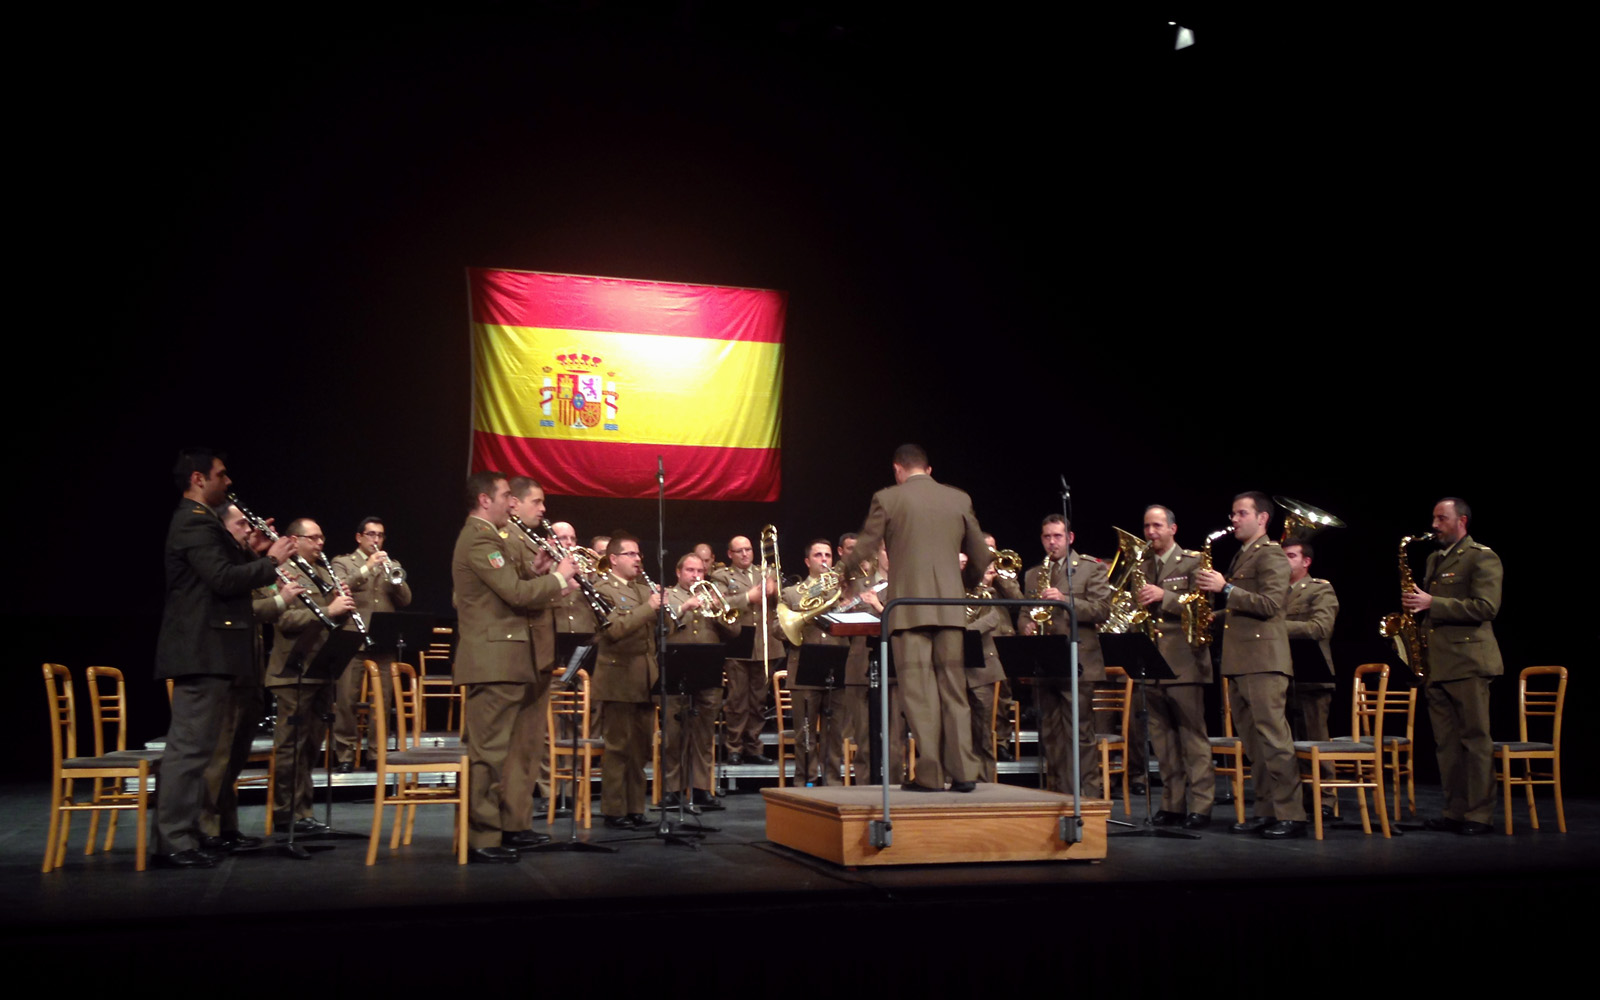 https://blog.globalcaja.es/wp-content/uploads/2015/11/Concierto-militar-1-1.jpg